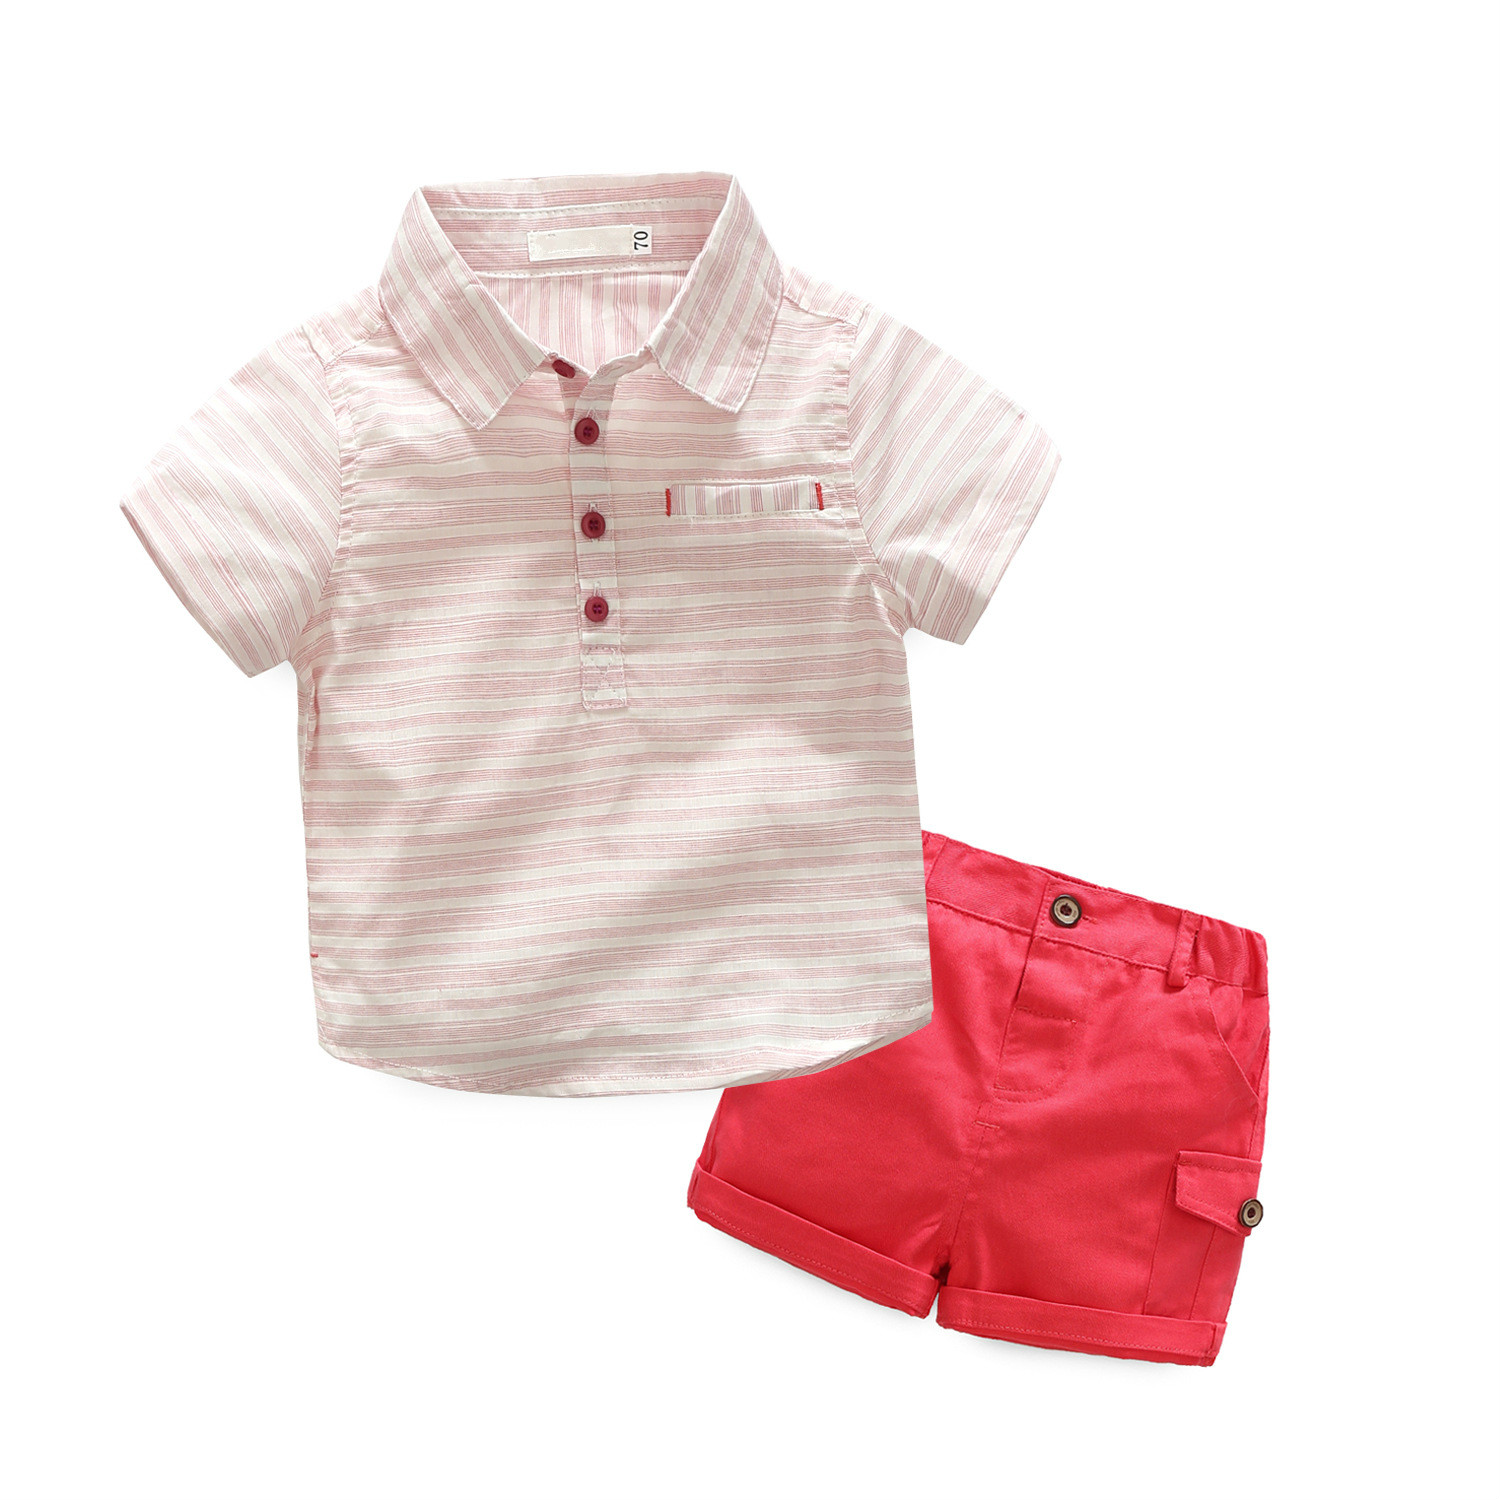 Baby Boys Pink Striped Clothing Sets Kids Short sleeves POLO Neck Shirt And Shorts Children Summer Clothes Sets For 70 95cm T008